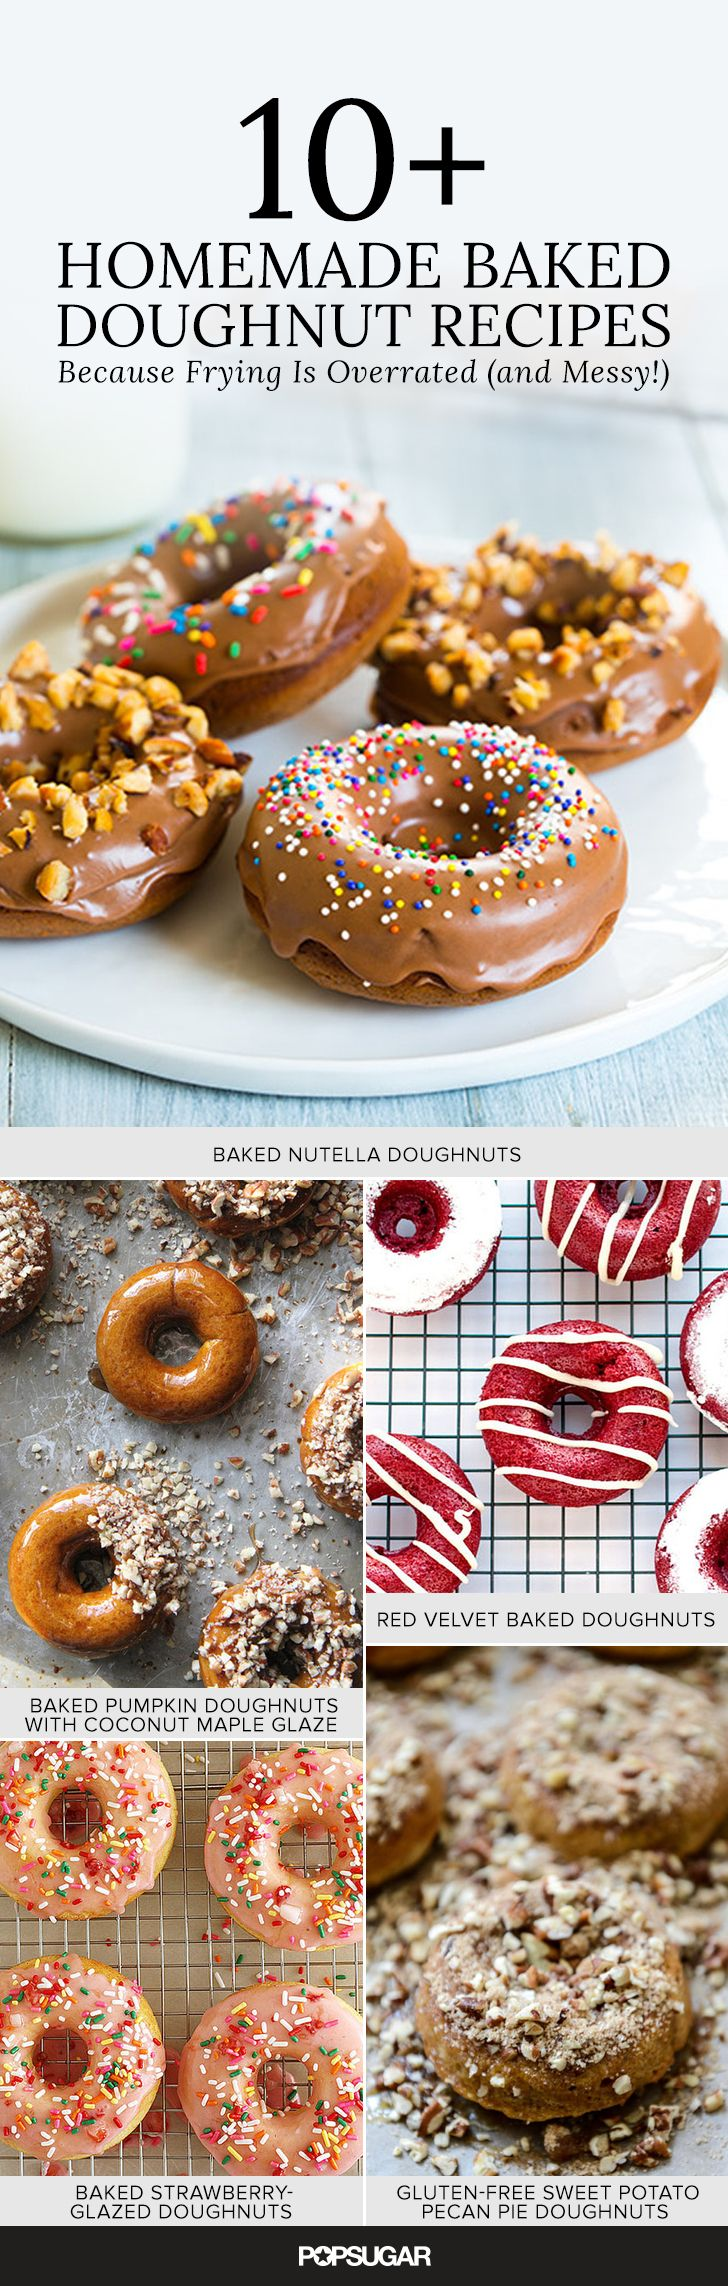 10+ Baked Doughnut Recipes, Because Frying is Overrated (and Messy!) — Nutella, red velvet, strawberry-glazed, and more!